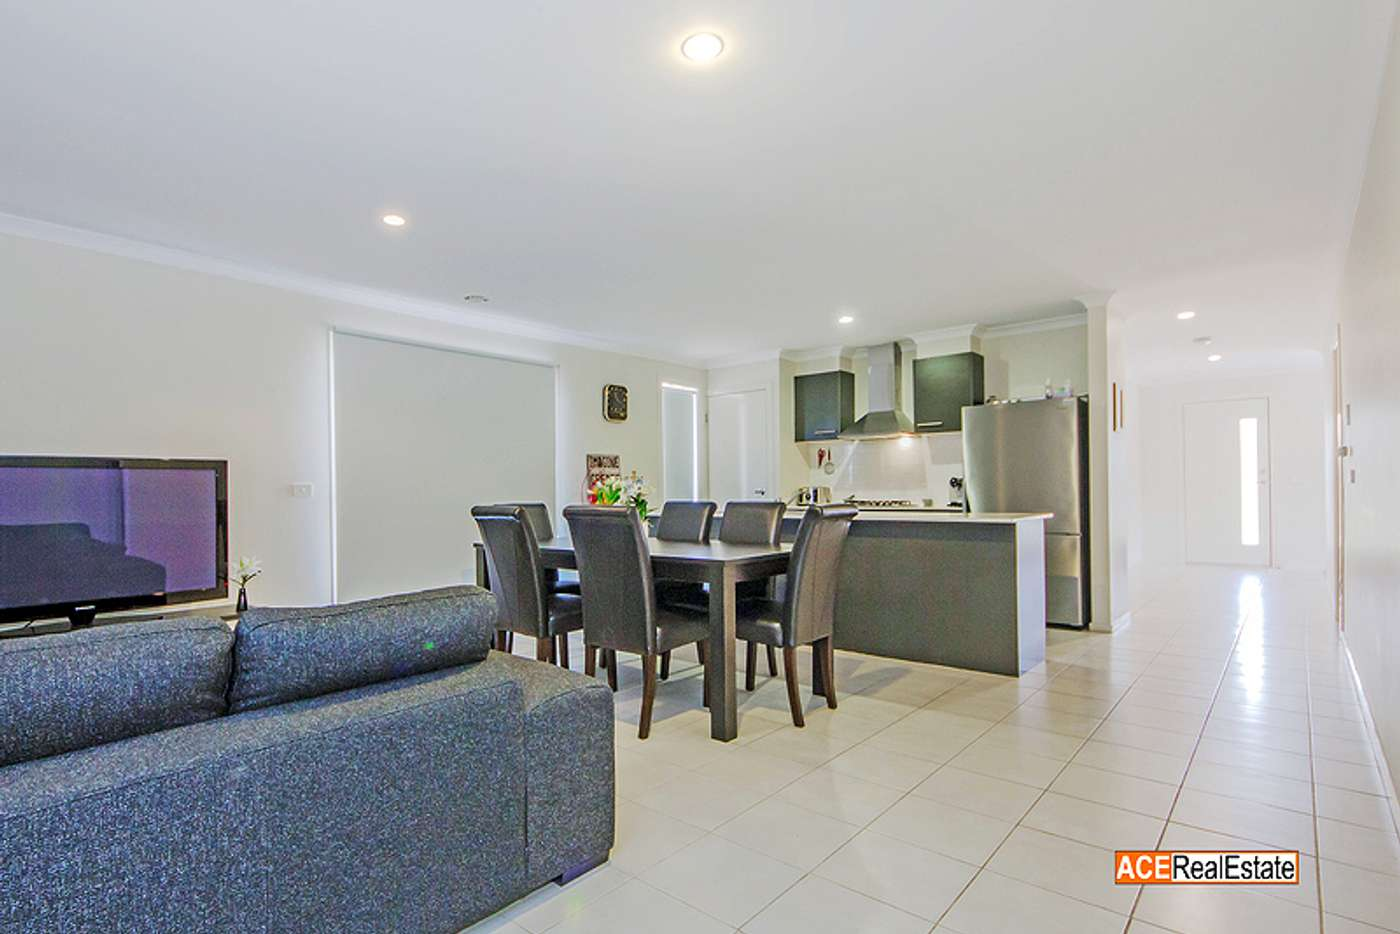 Sixth view of Homely house listing, 1 Woodlands Street, Tarneit VIC 3029